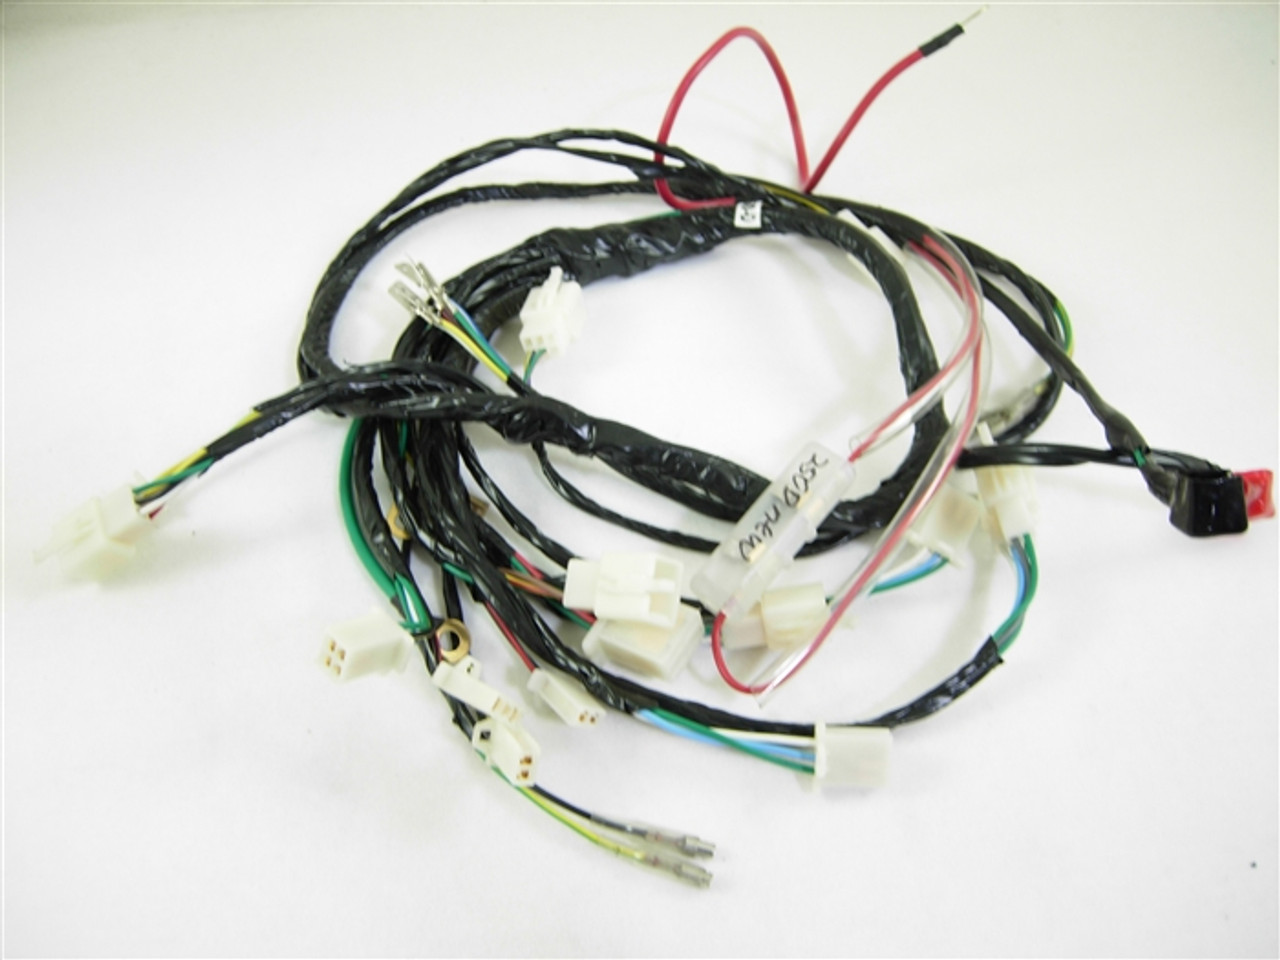 WIRE HARNESS 12803-A156-13